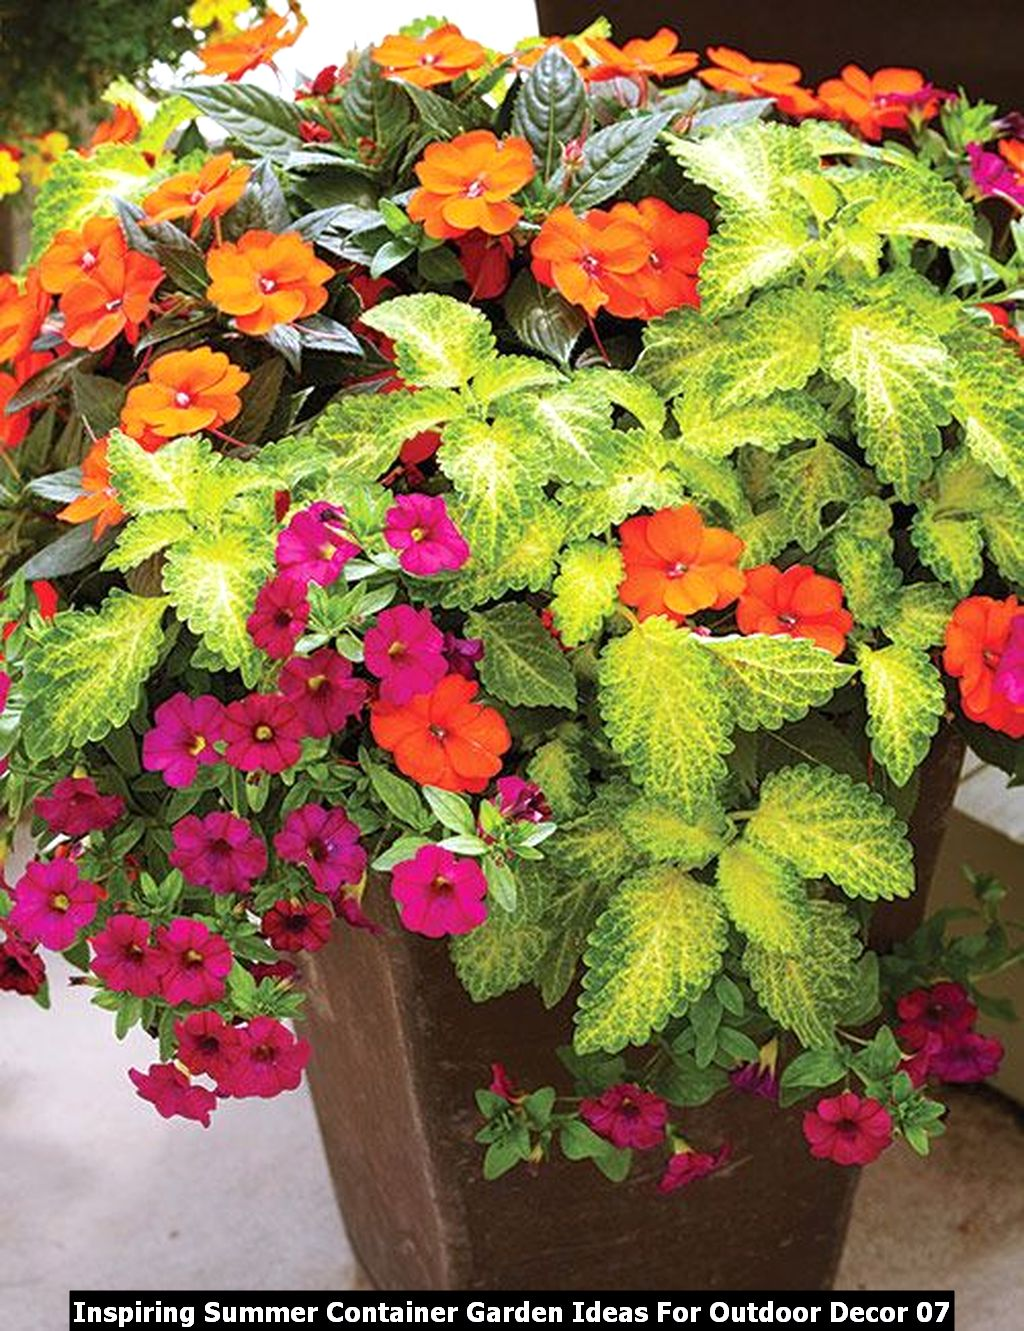 Inspiring Summer Container Garden Ideas For Outdoor Decor 07